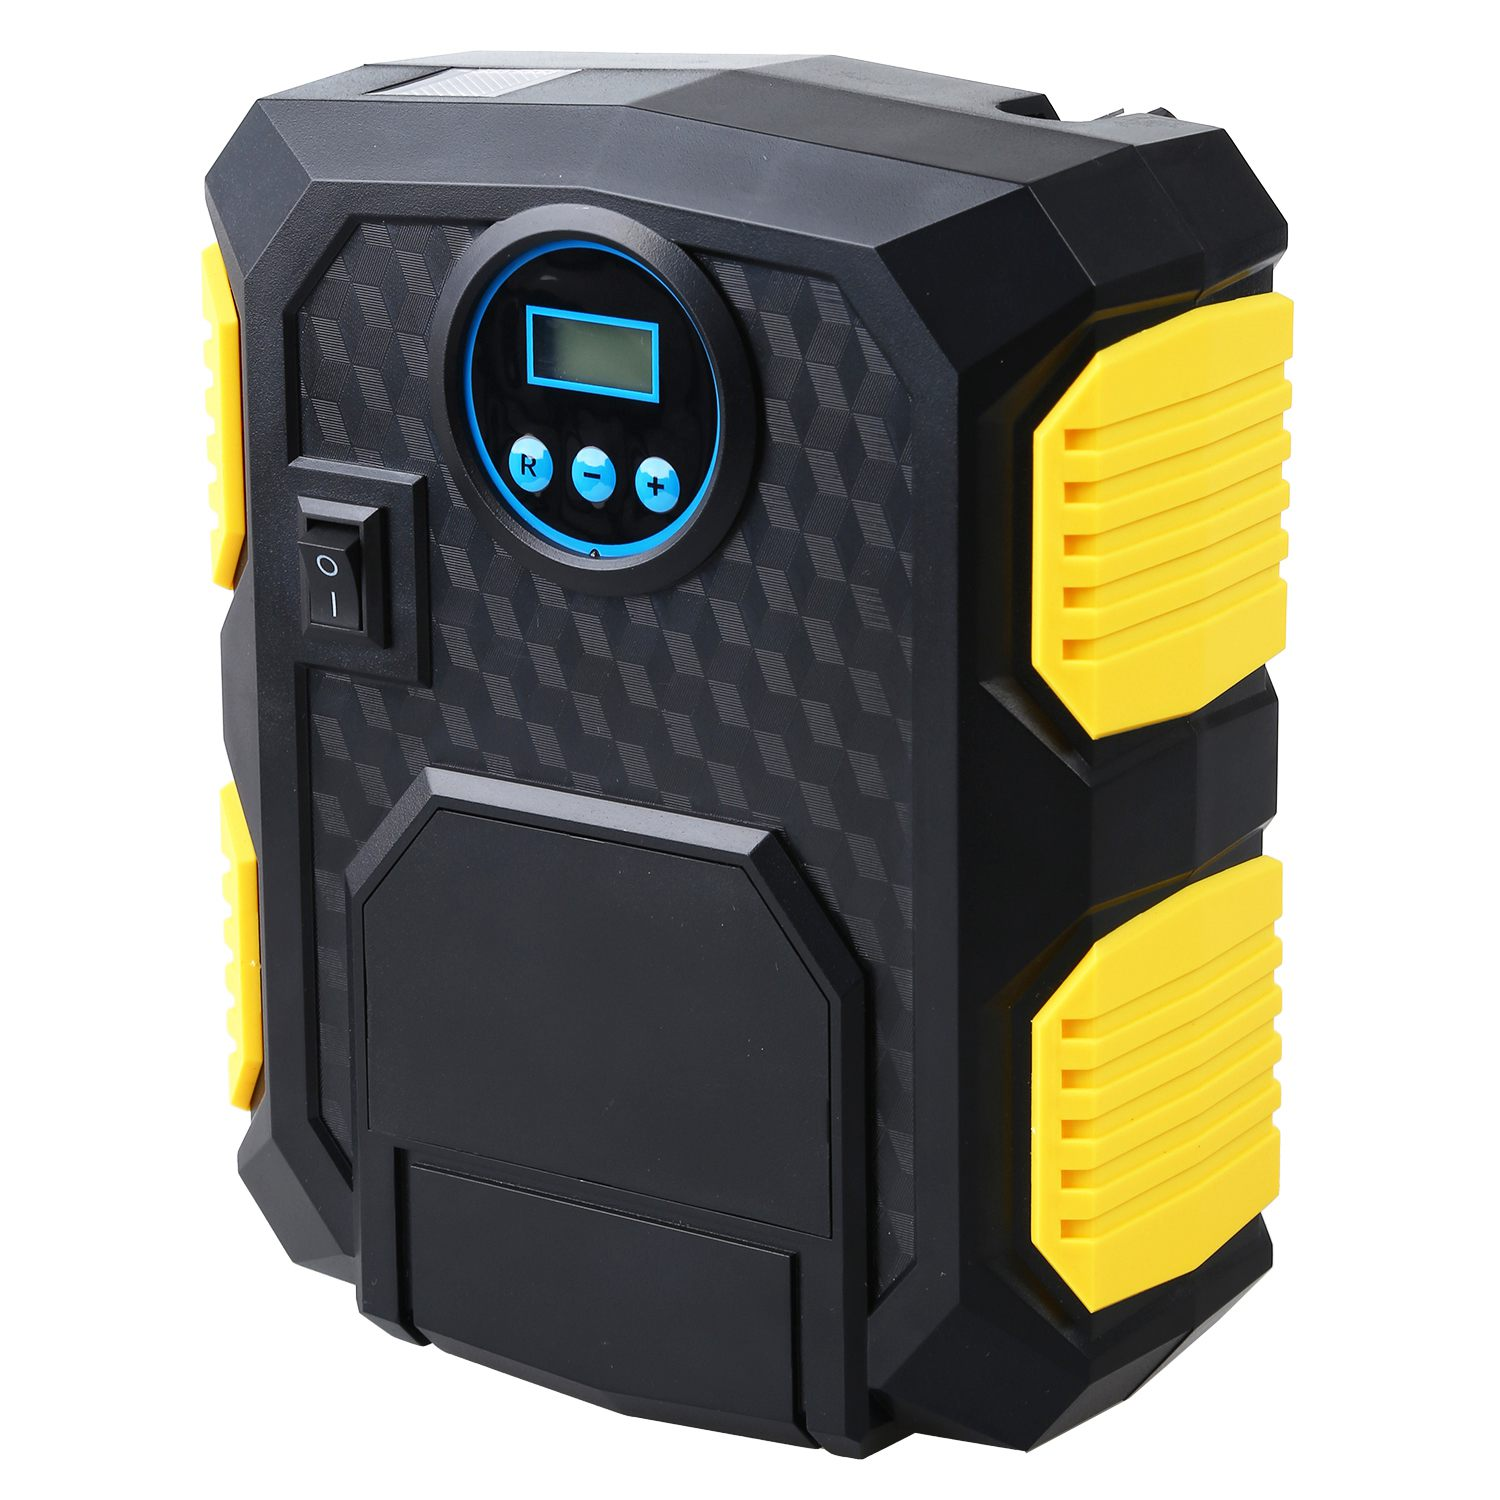 Digital Tire Inflator 12V Digital Car Tyre Inflator Electric Air Compressor Automatic Portable Pump(China)